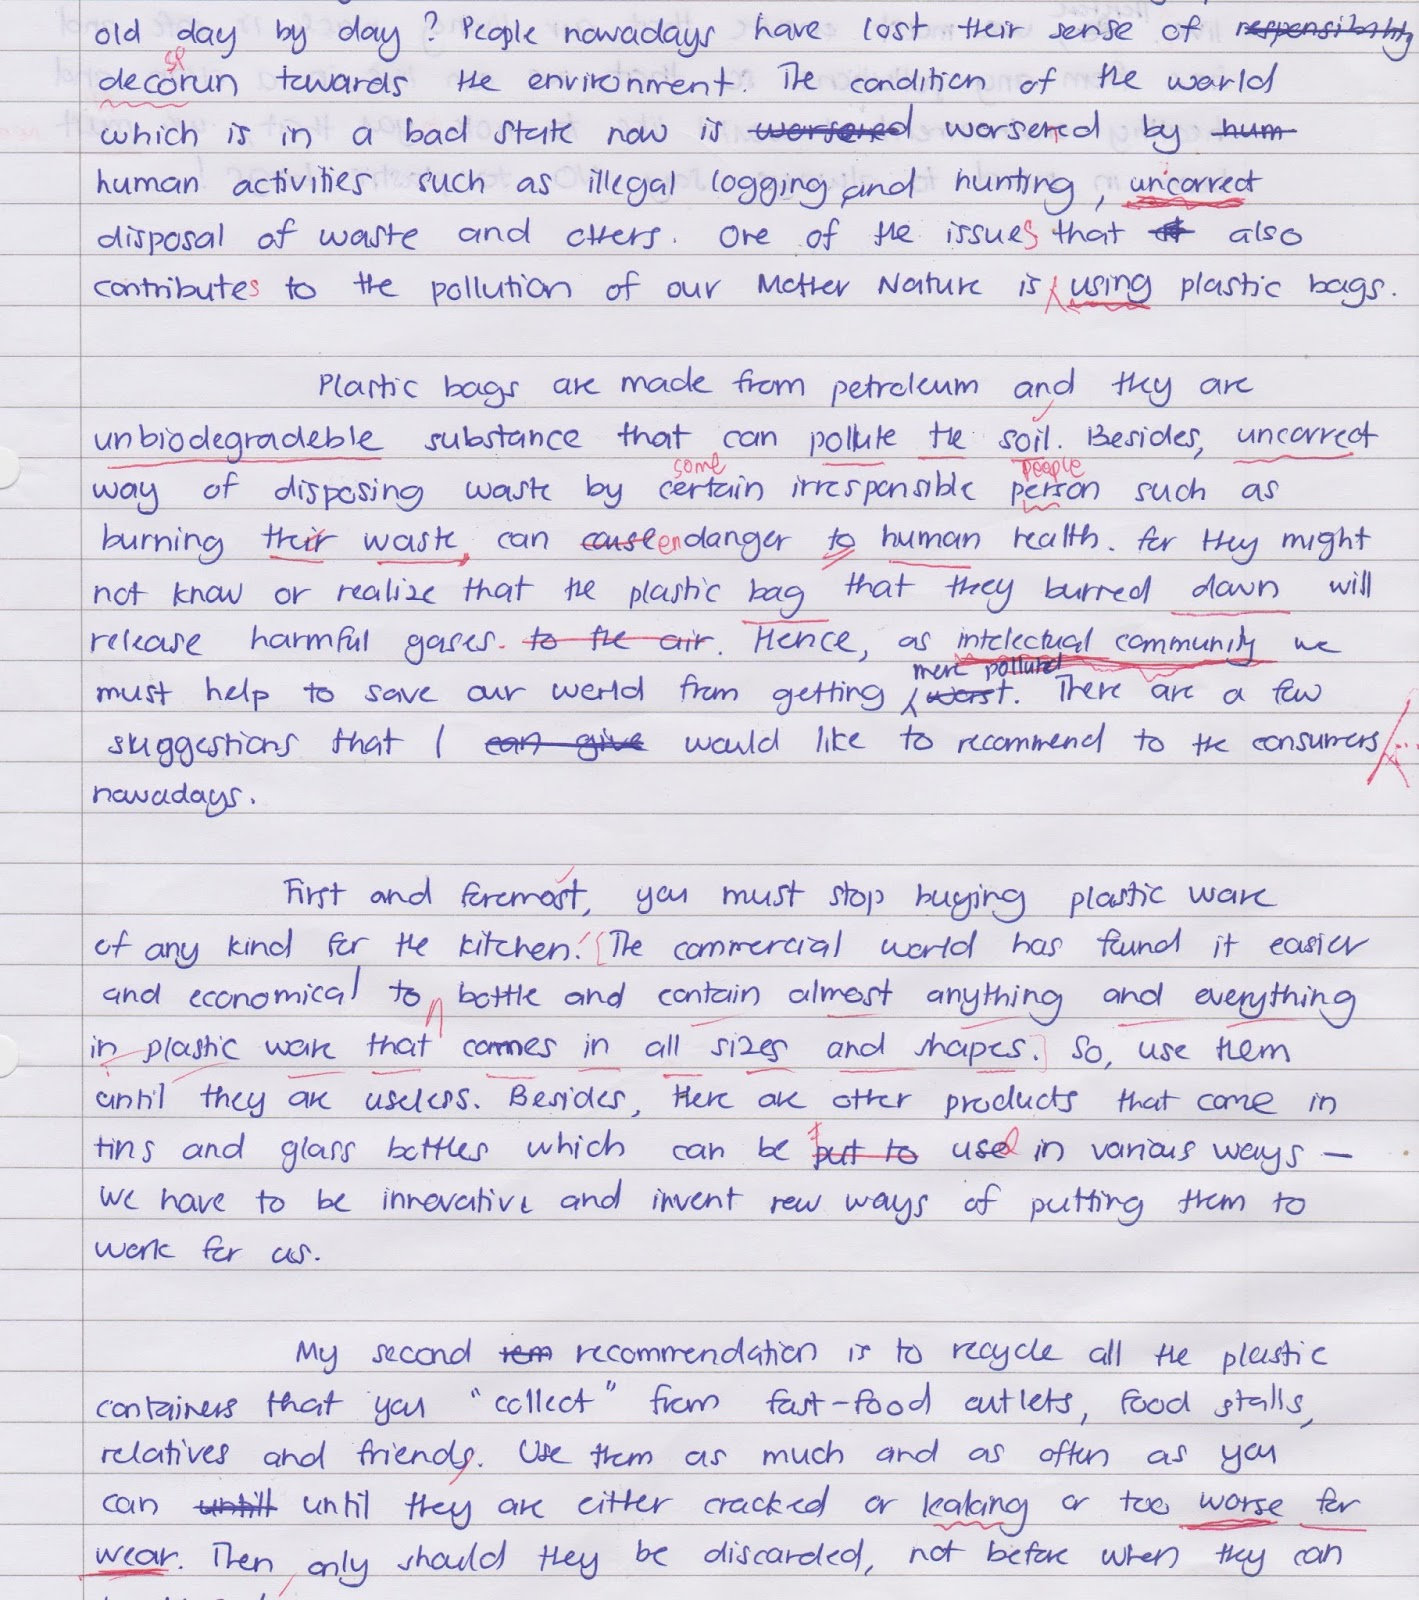 001 Essay Example Plastic Unforgettable Waste Management In Ocean Reduce Full